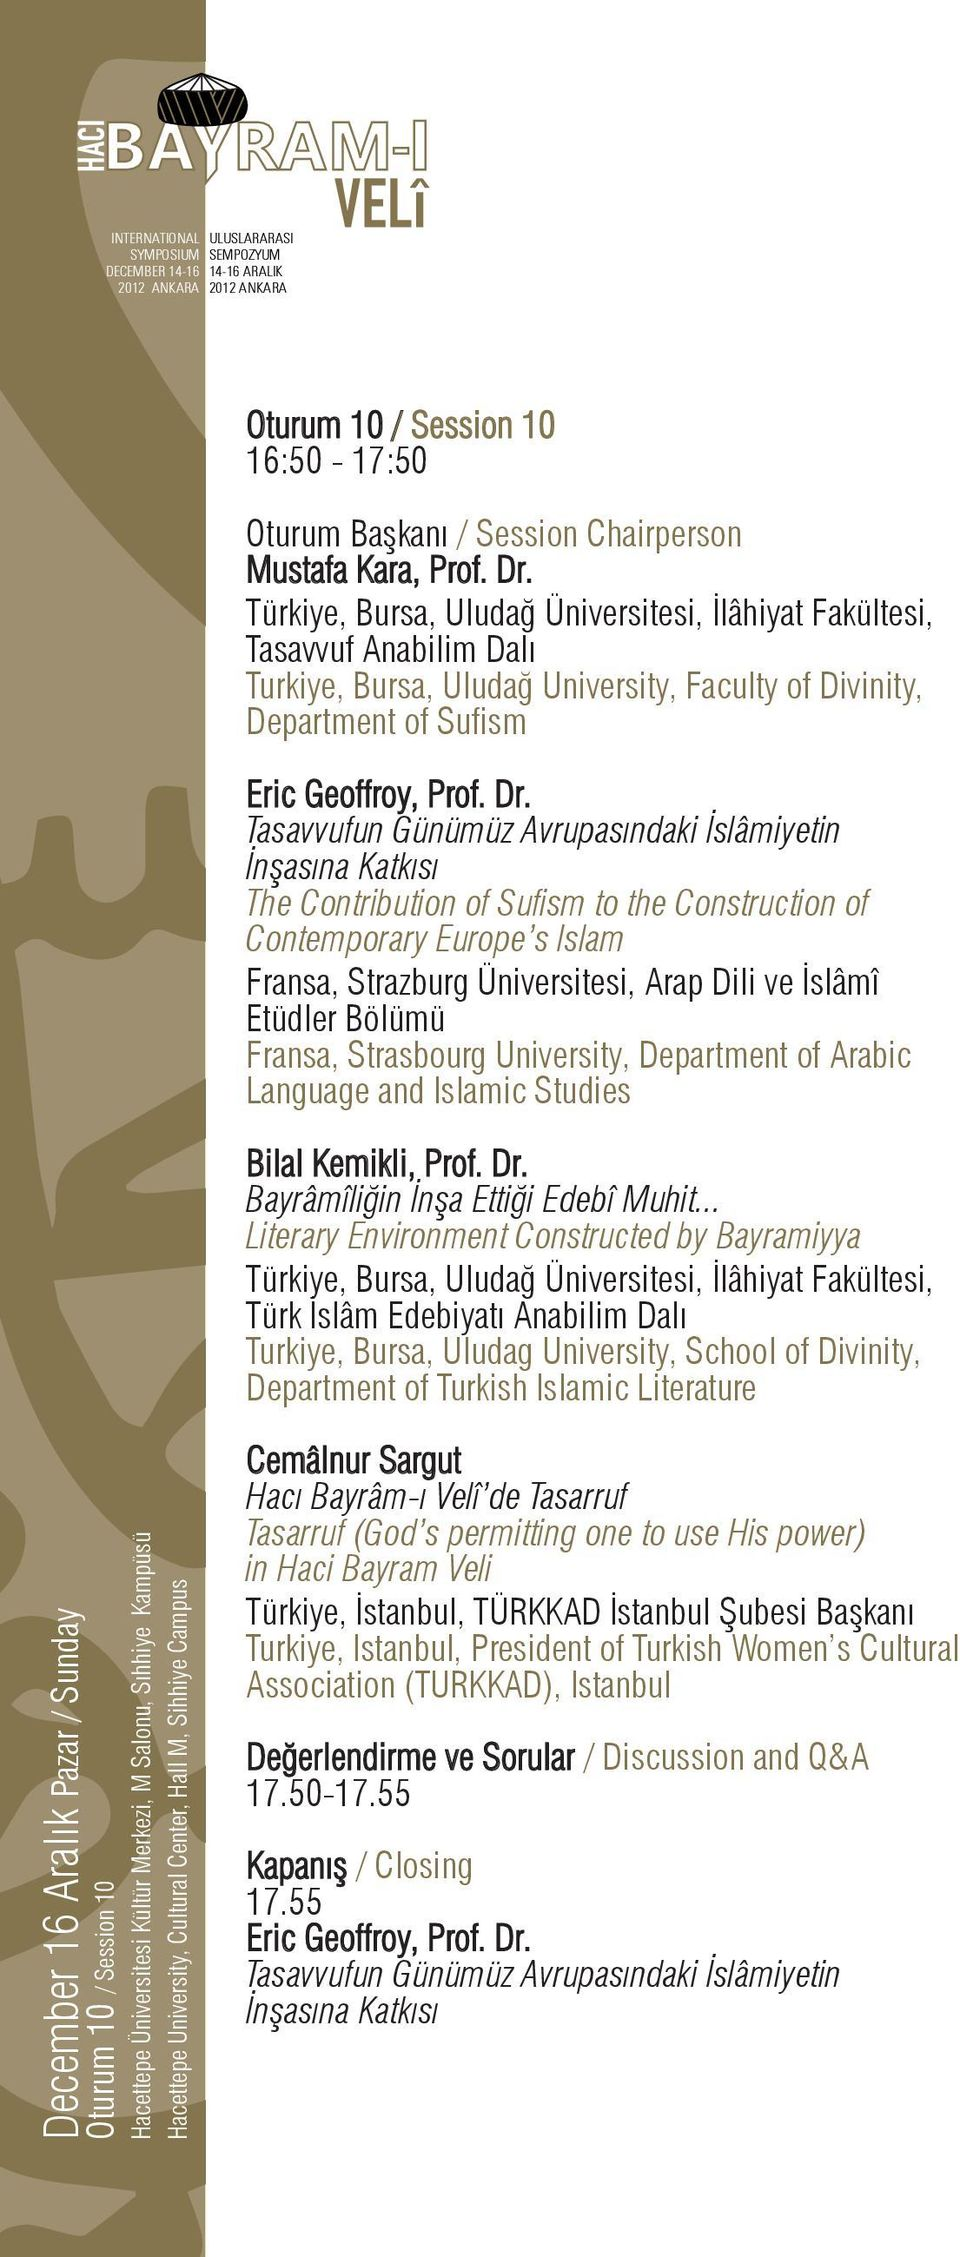 Tasavvufun Günümüz Avrupasındaki İslâmiyetin İnşasına Katkısı The Contribution of Sufism to the Construction of Contemporary Europe s Islam Fransa, Strazburg Üniversitesi, Arap Dili ve İslâmî Etüdler